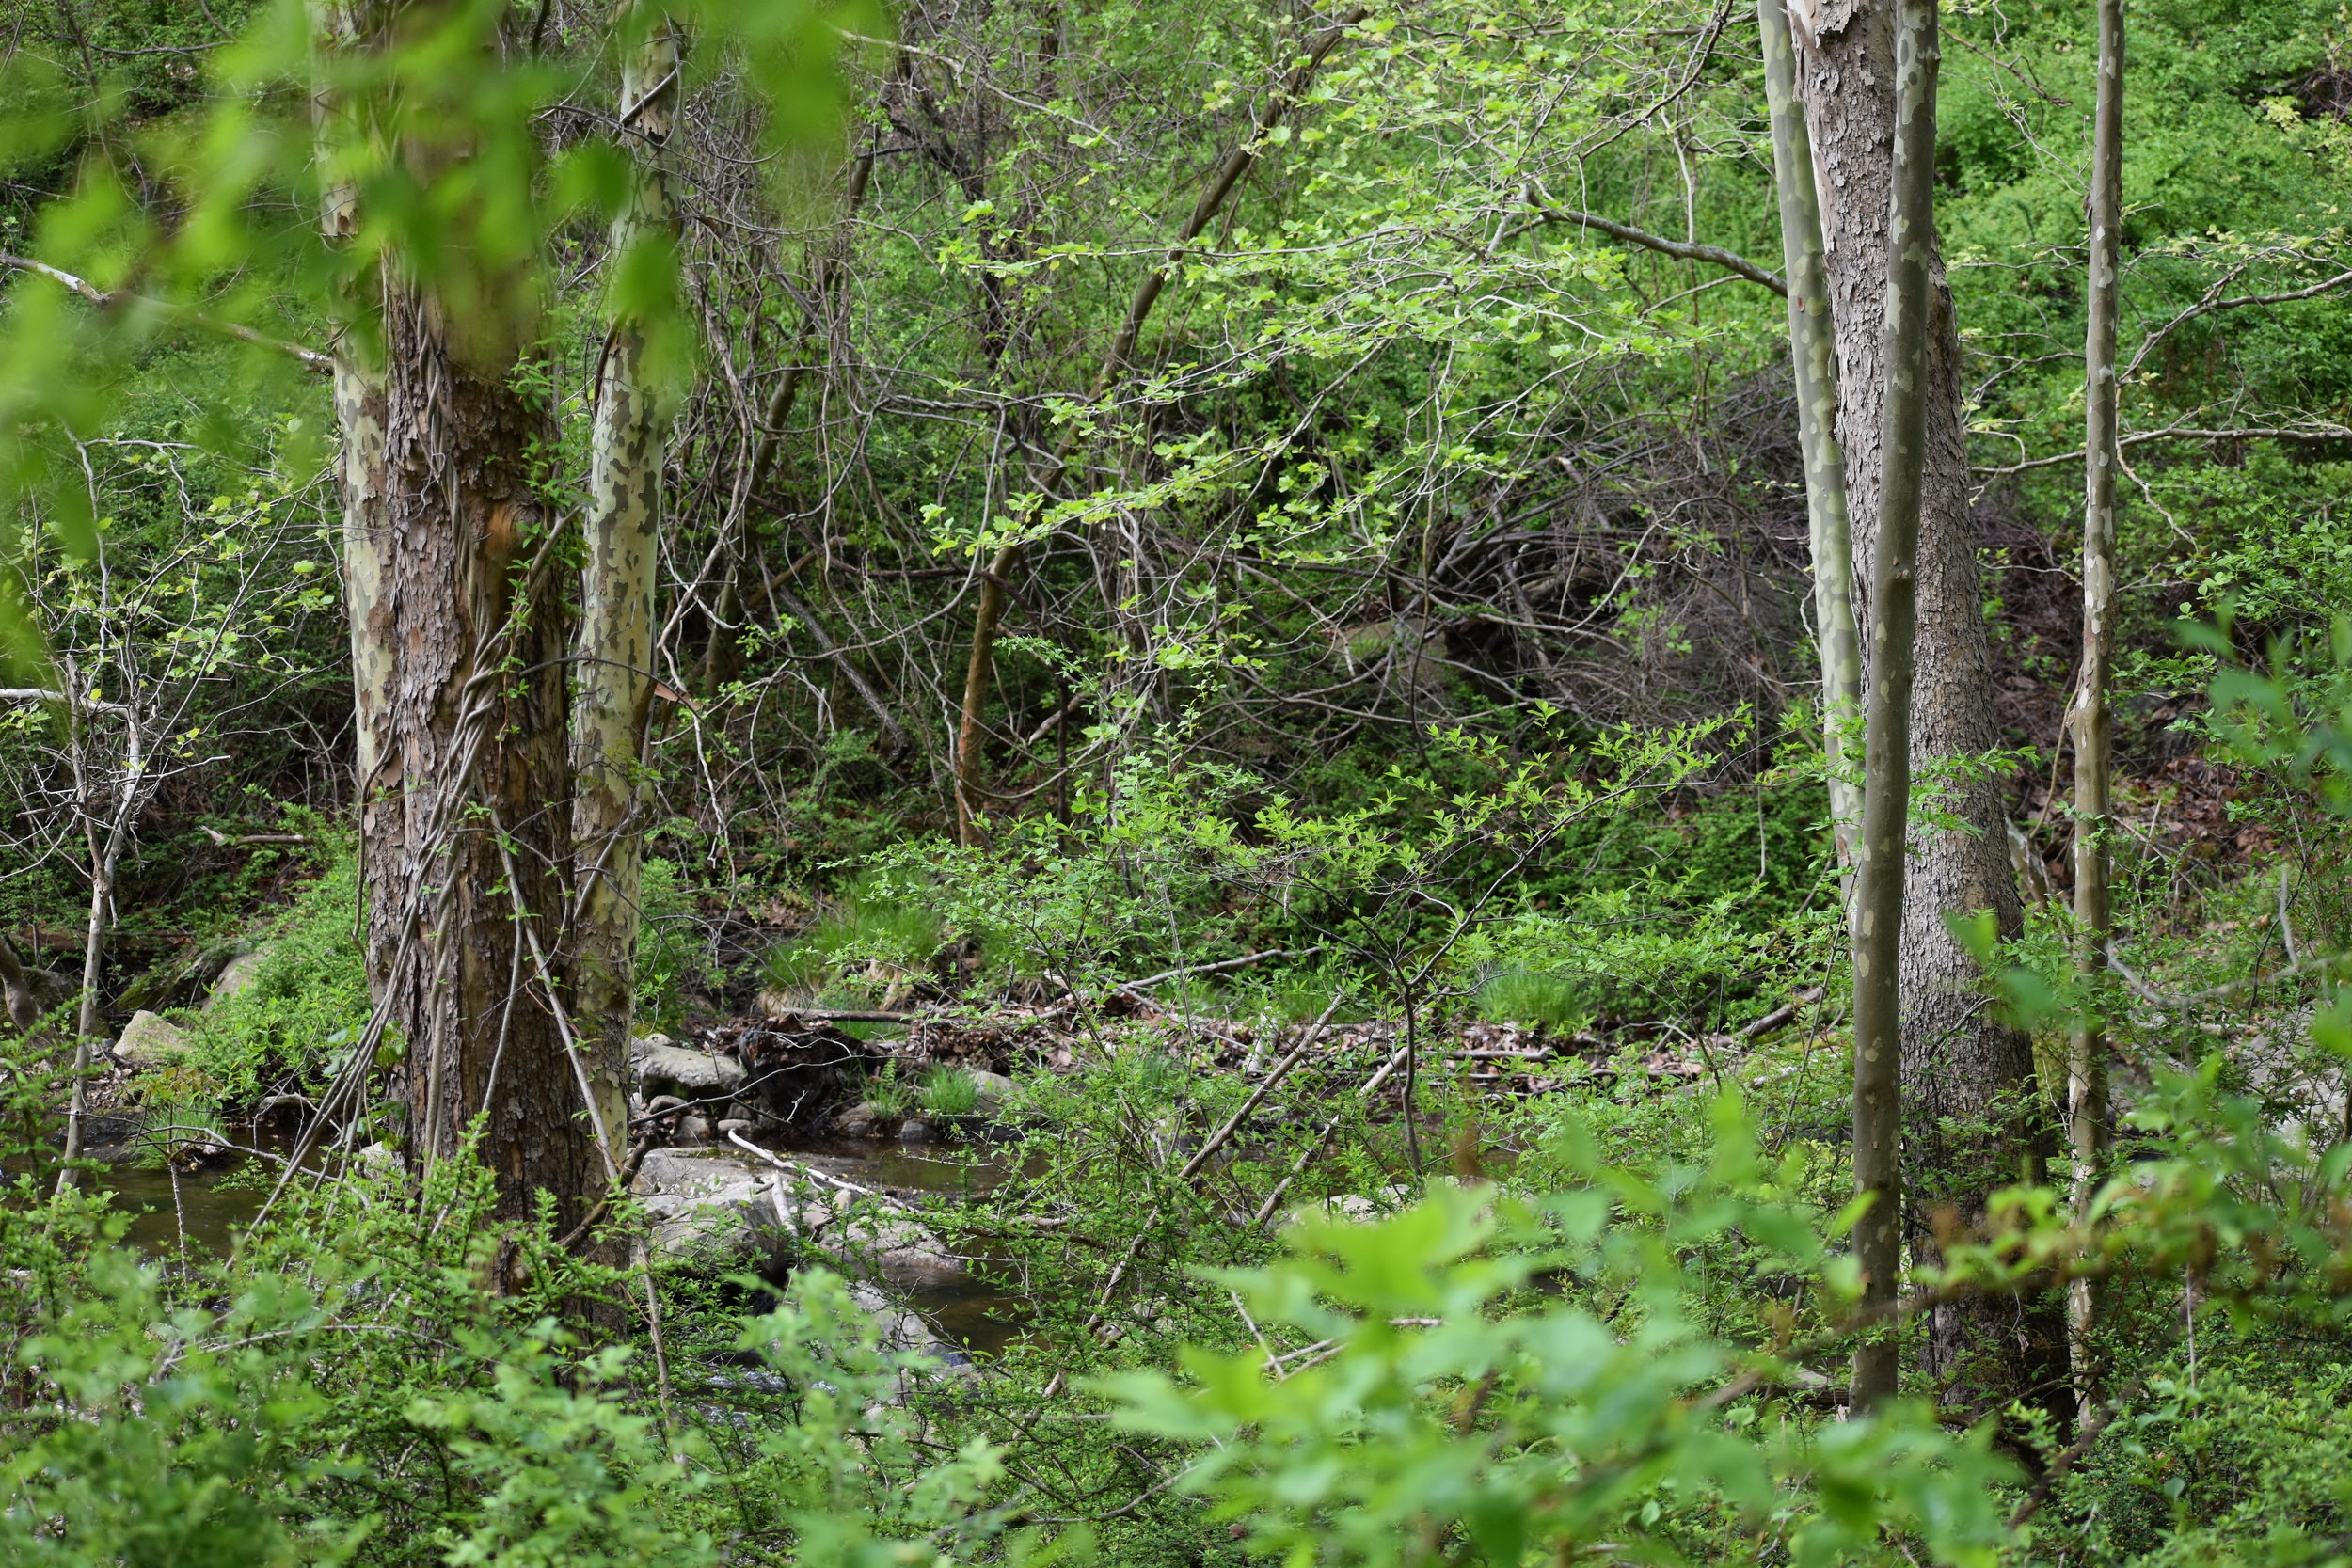 Hooded Warbler Habitat: note the thick understory and stream